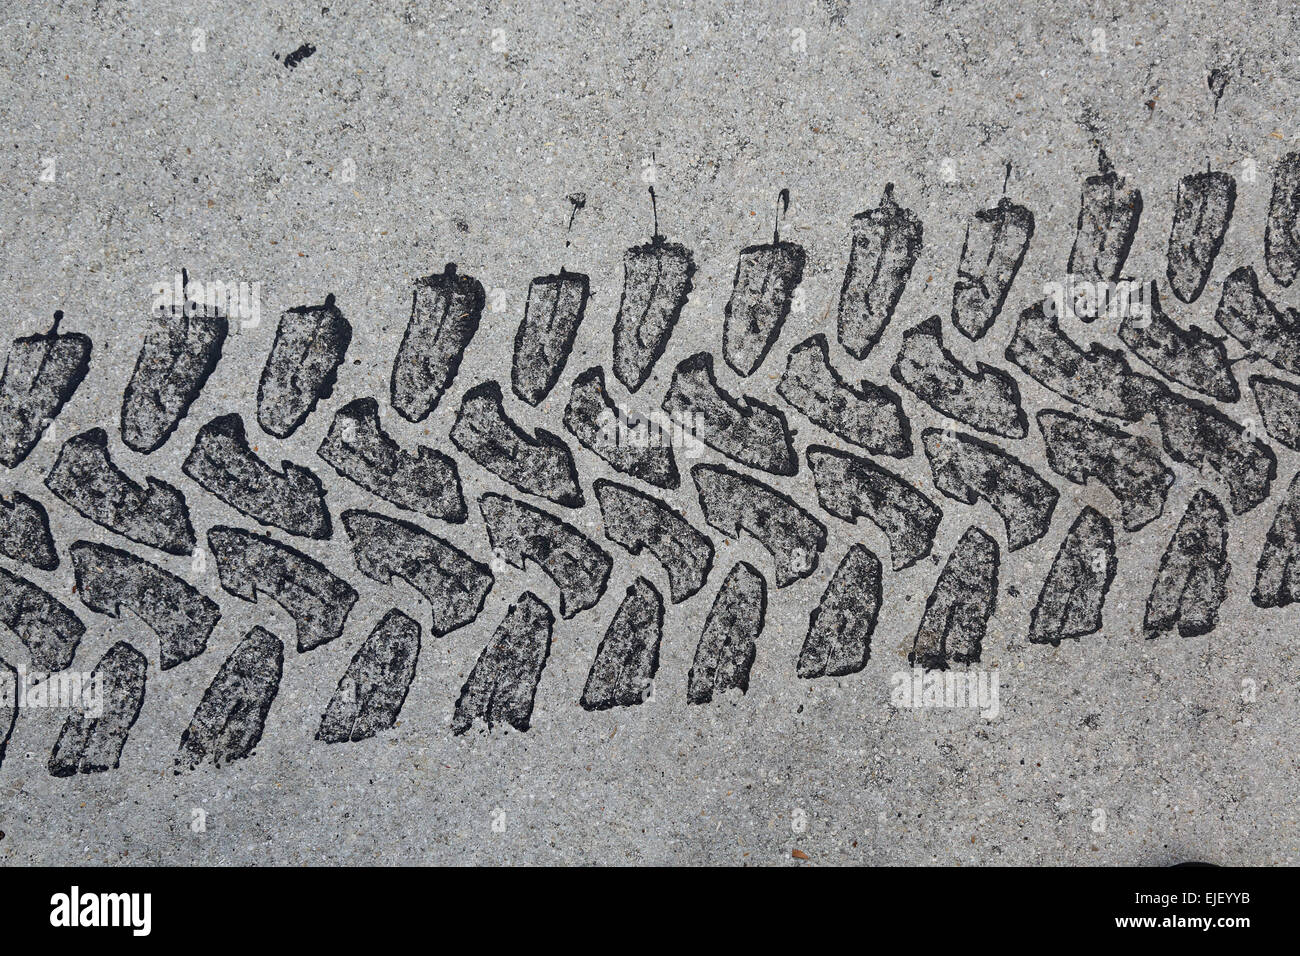 Tire mark, tyre track, on pavement background - Stock Image